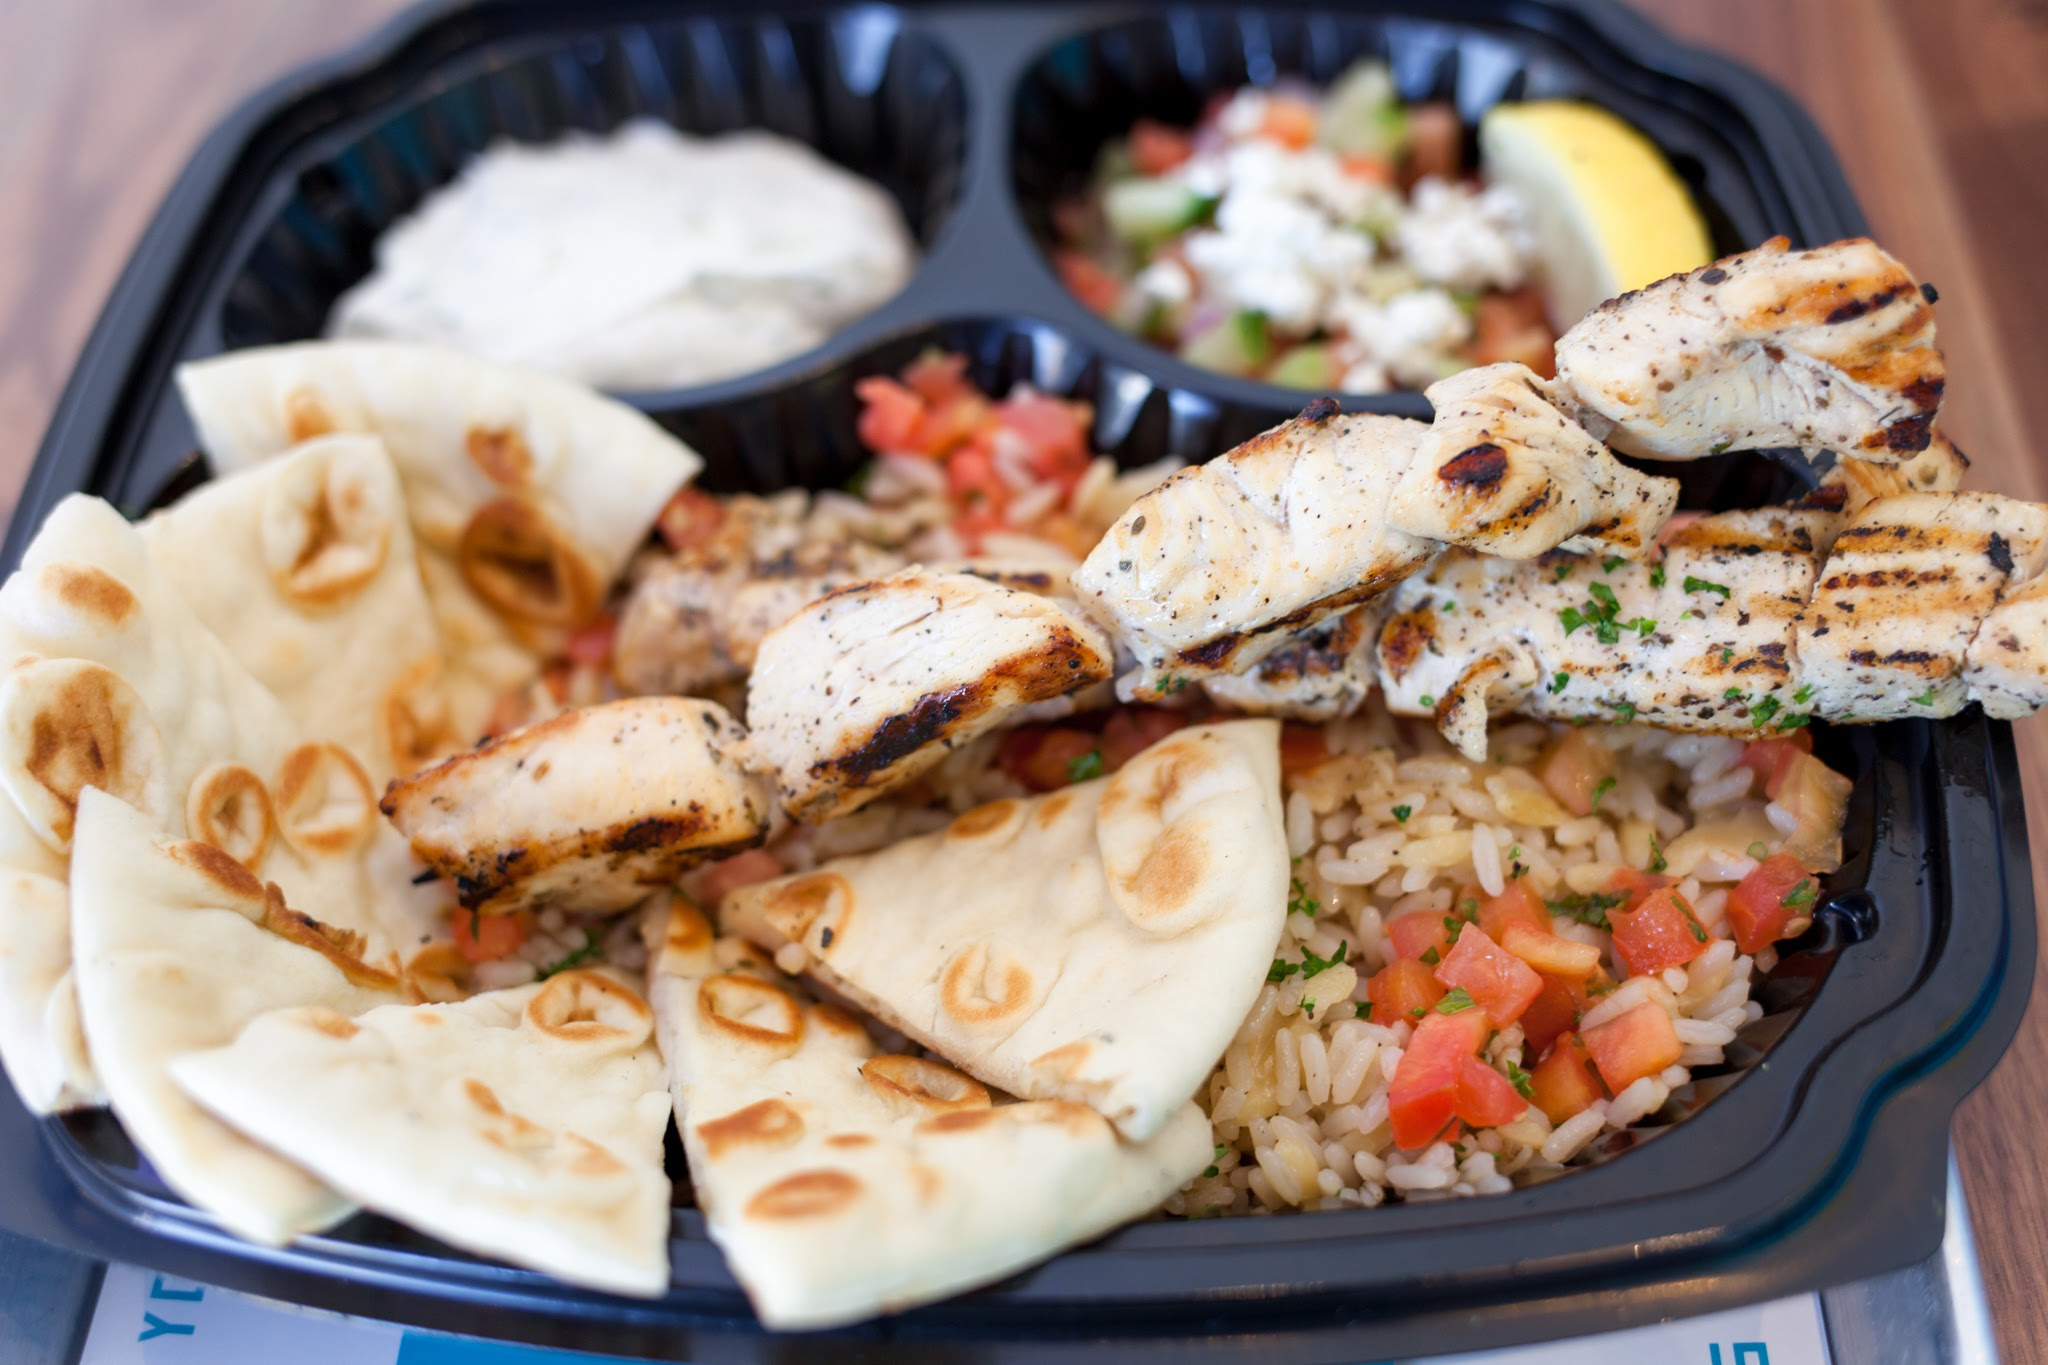 Chicken souvlaki platter never looked so good